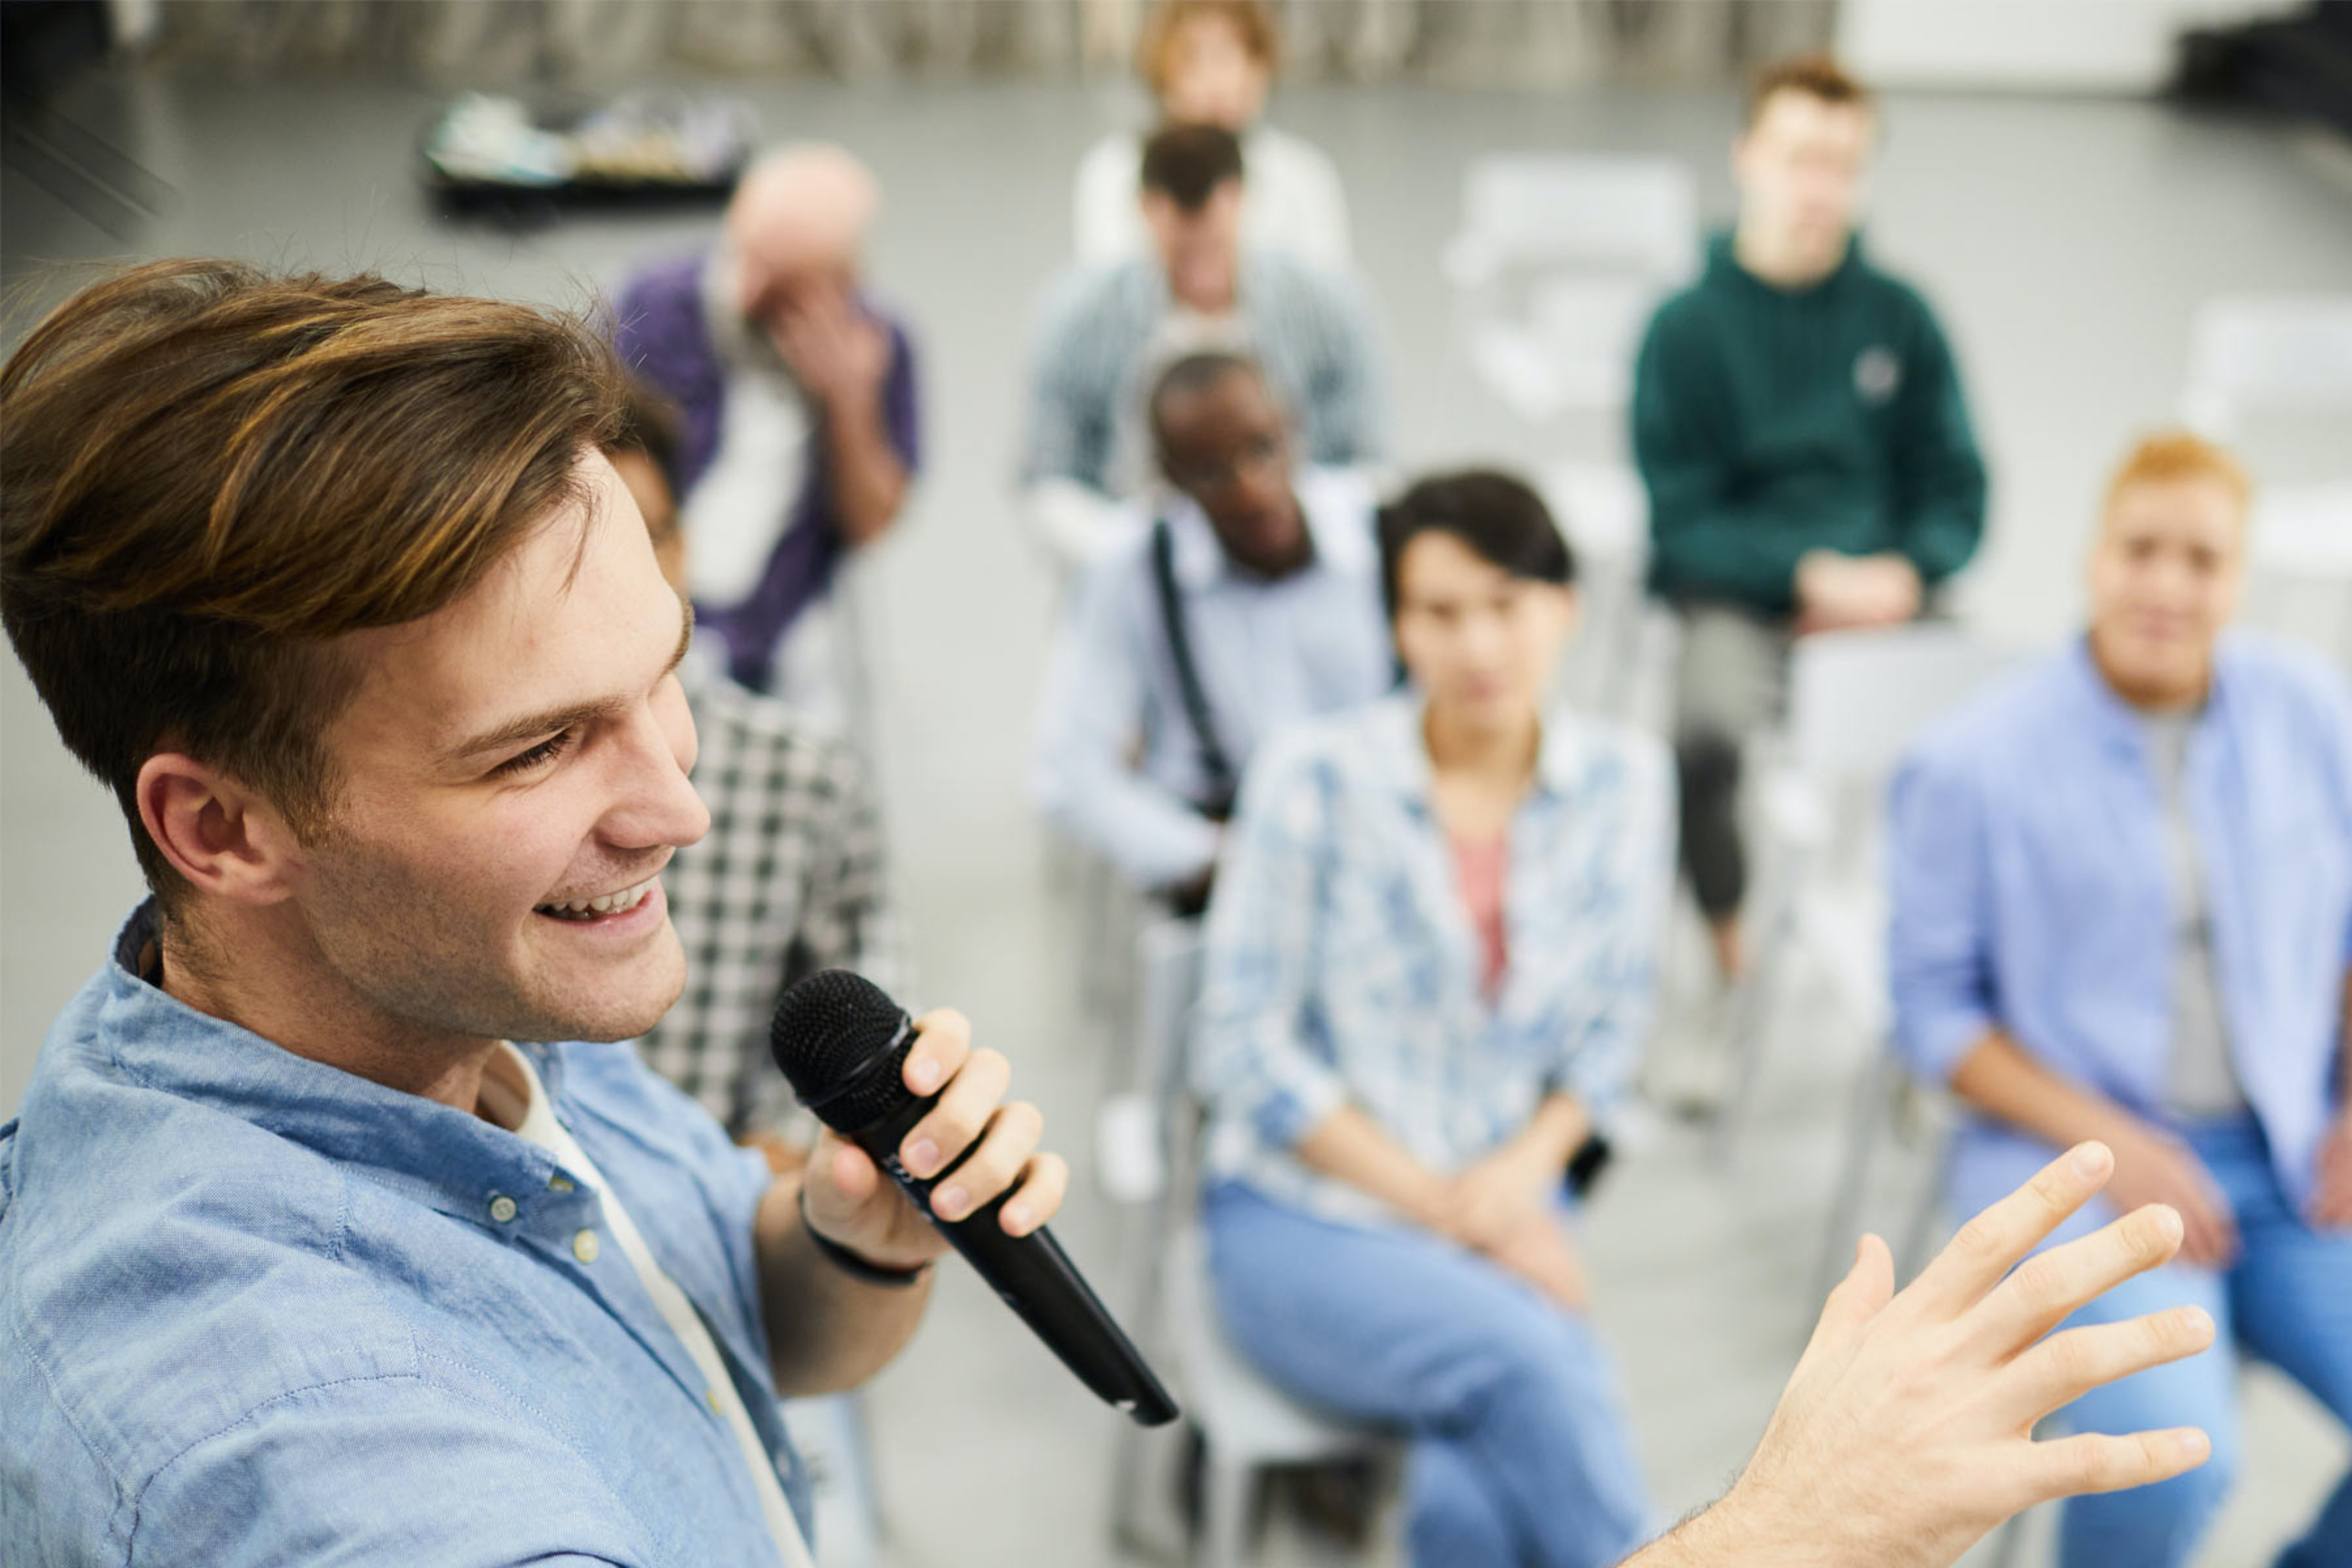 man giving a presentation to people with a microphone